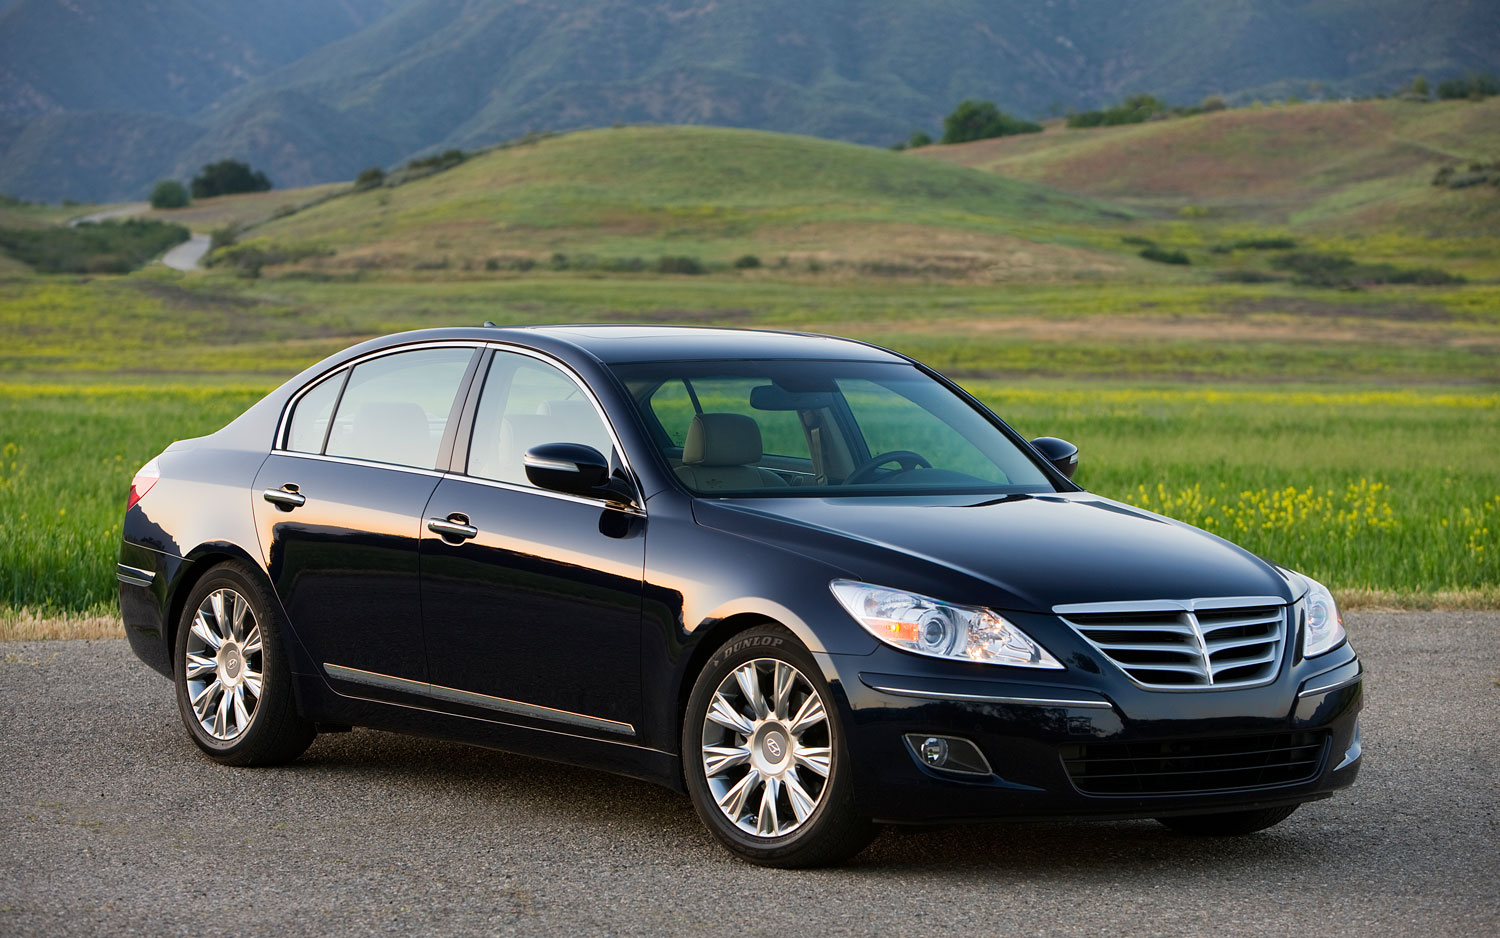 2011 hyundai genesis sedan 4 6 editors 39 notebook. Black Bedroom Furniture Sets. Home Design Ideas